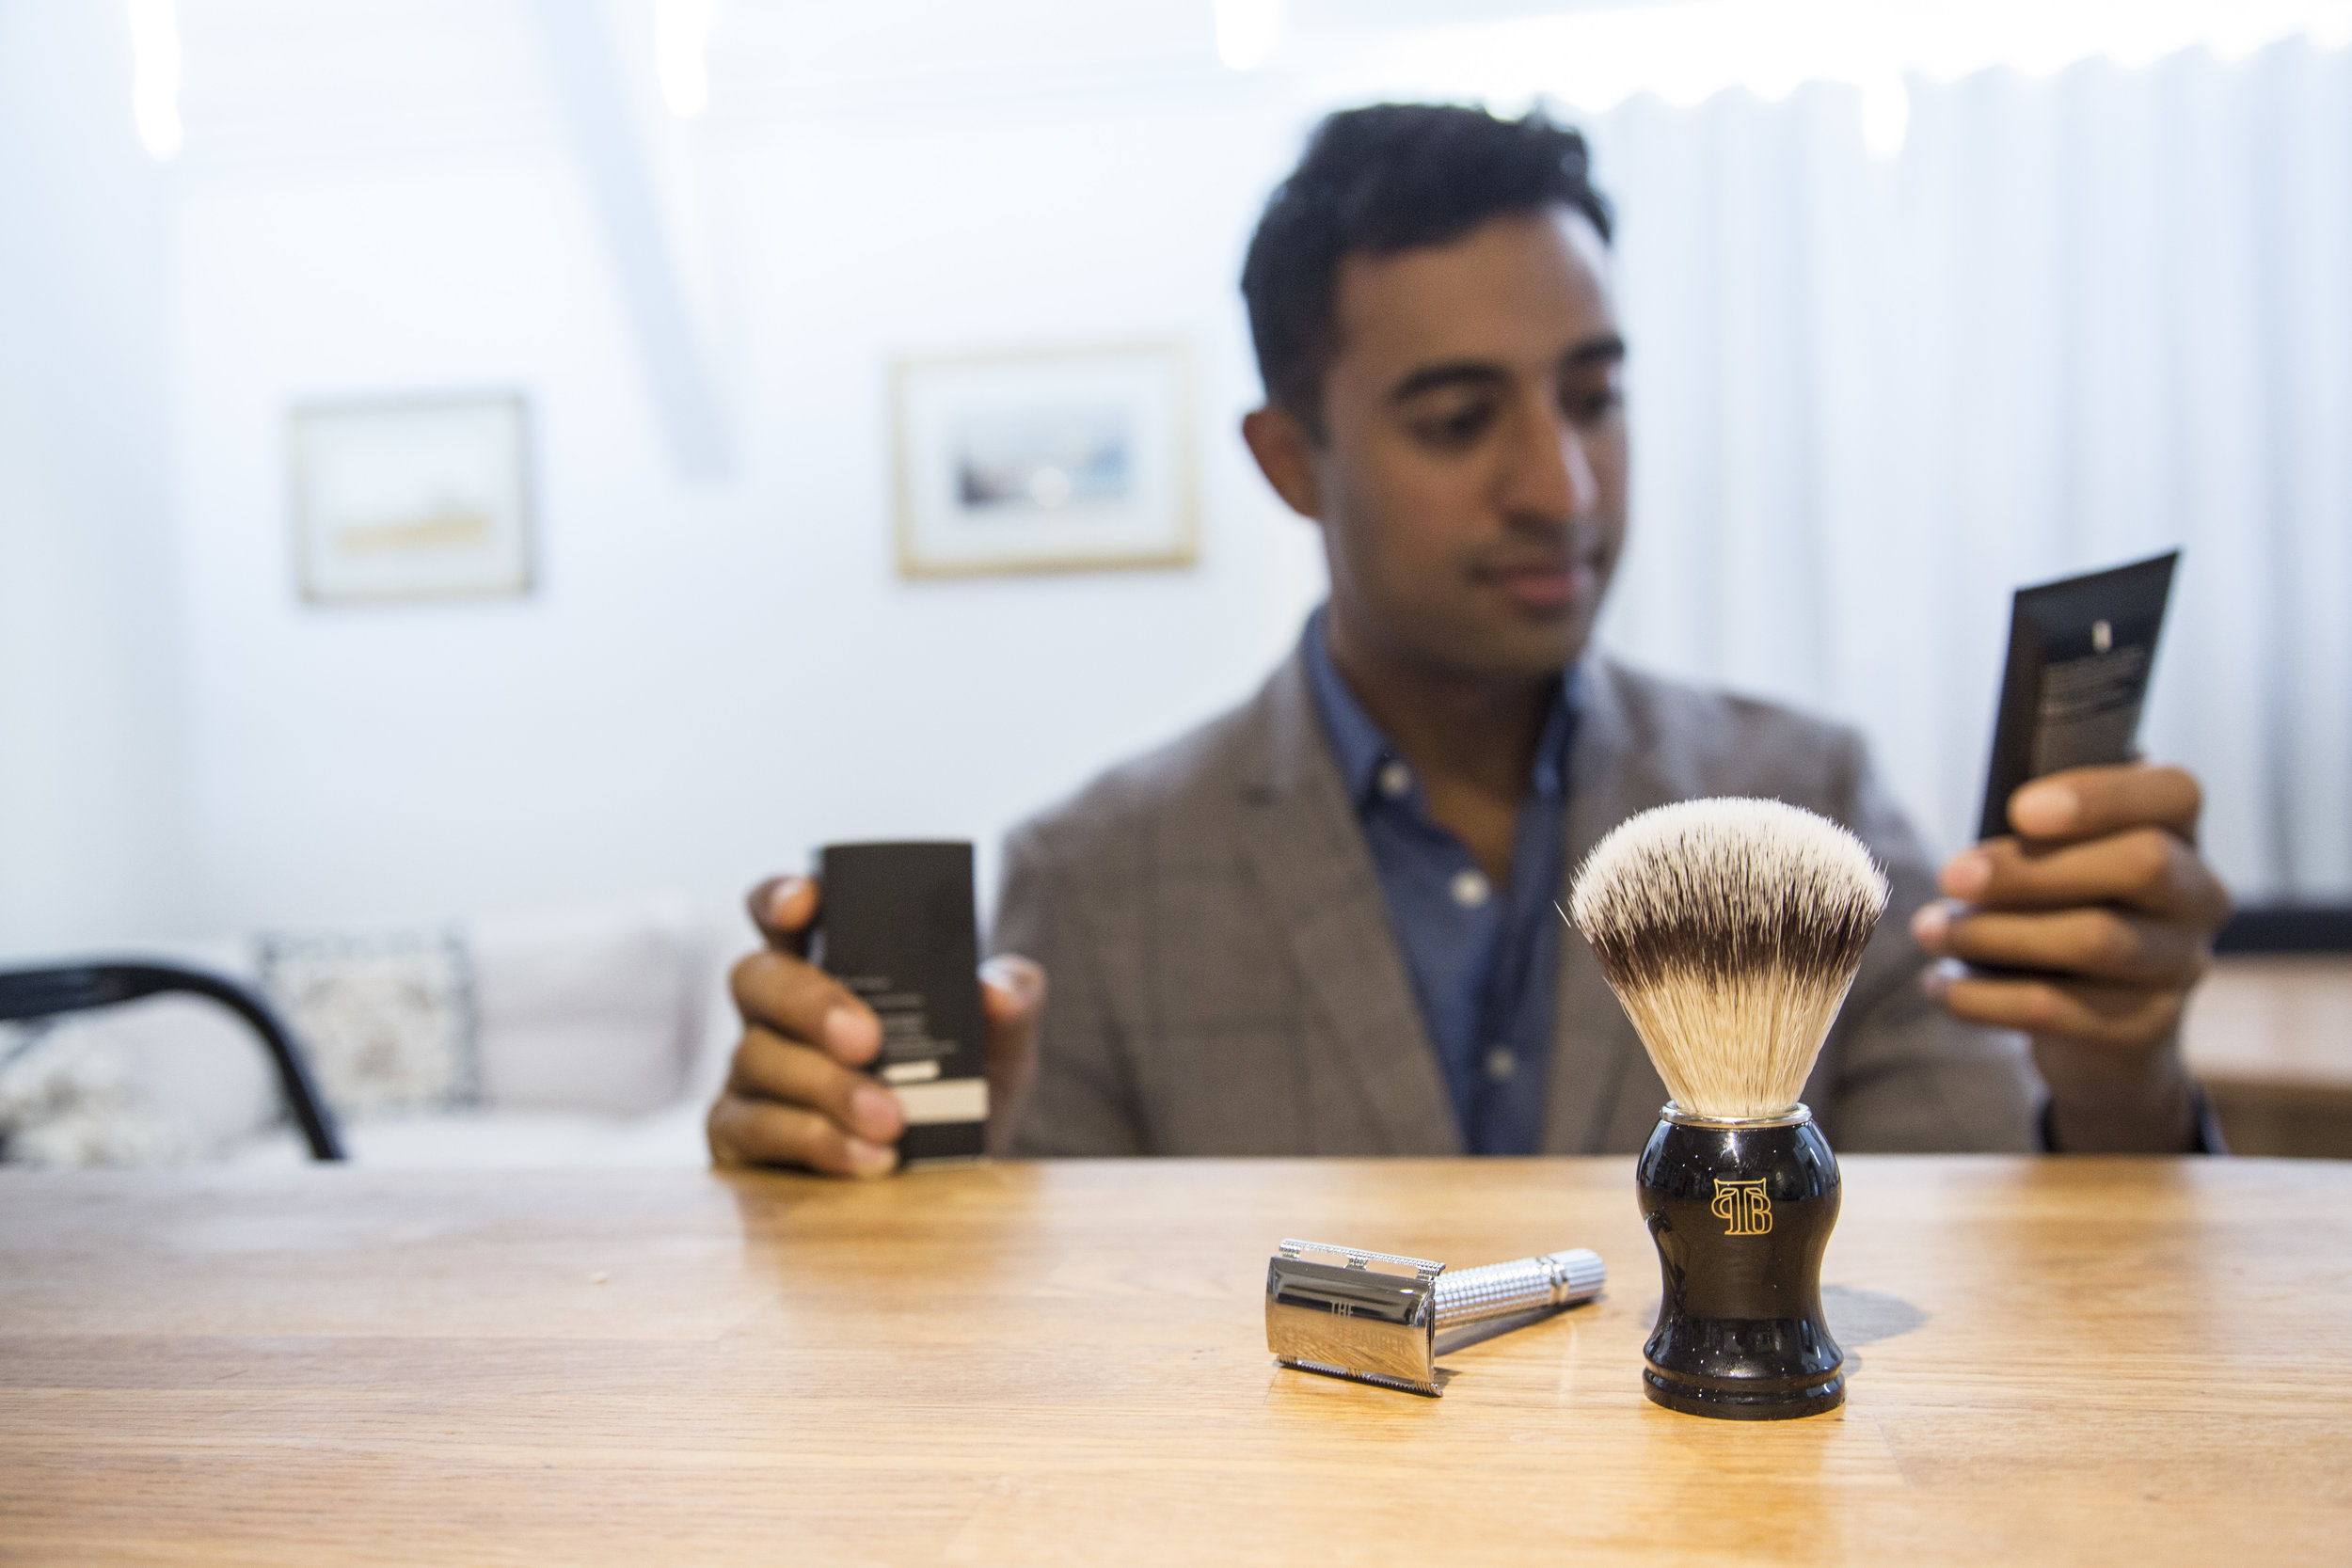 A lovely wet shave experience by The Personal Barber